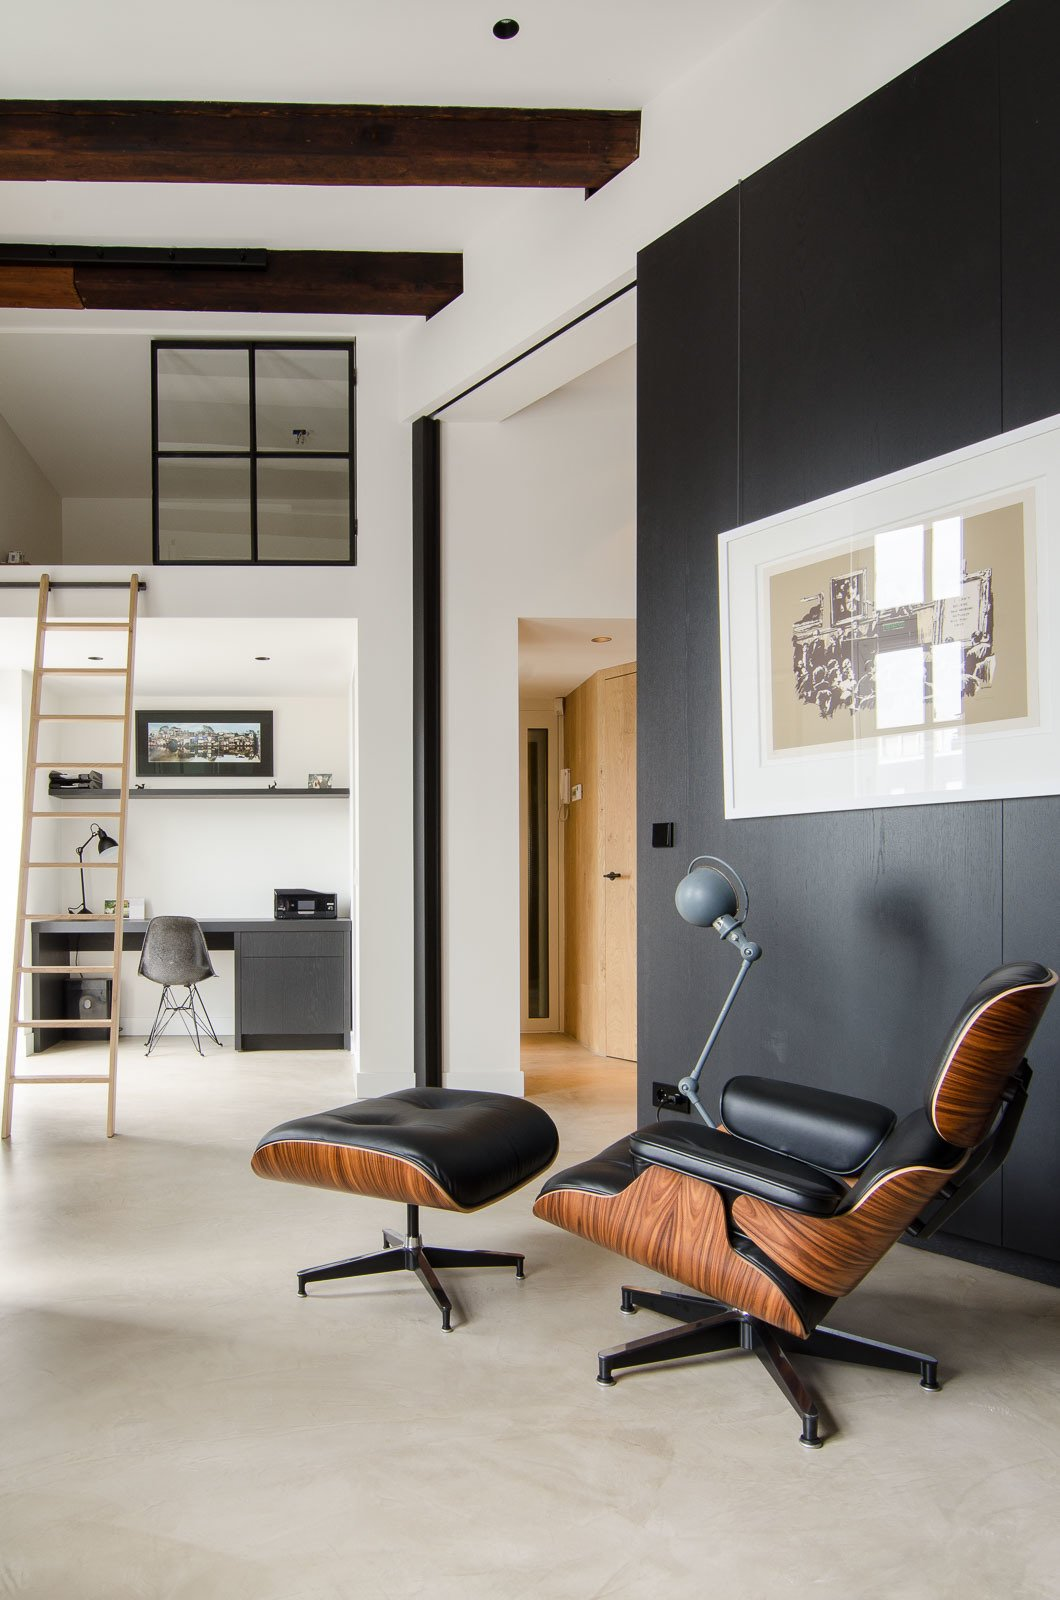 This open-concept Amsterdam loft features soaring 15-foot ceilings, an Eames lounge chair and ottoman, and a Jielde light. Throughout the home, Standard Studio architects Wouter Slot and Jurjen van Hulzen favored raw materials, including concrete, oiled oak, and hot-rolled steel, all of which complemented the original space's industrial feel. Tucked smartly underneath the loft, a compact home office features functional built-in shelving and an Eames DSR chair. Tagged: Living Room, Concrete Floor, Recliner, and Chair.  Loft by Tremaine Eppenger from Bloemgracht